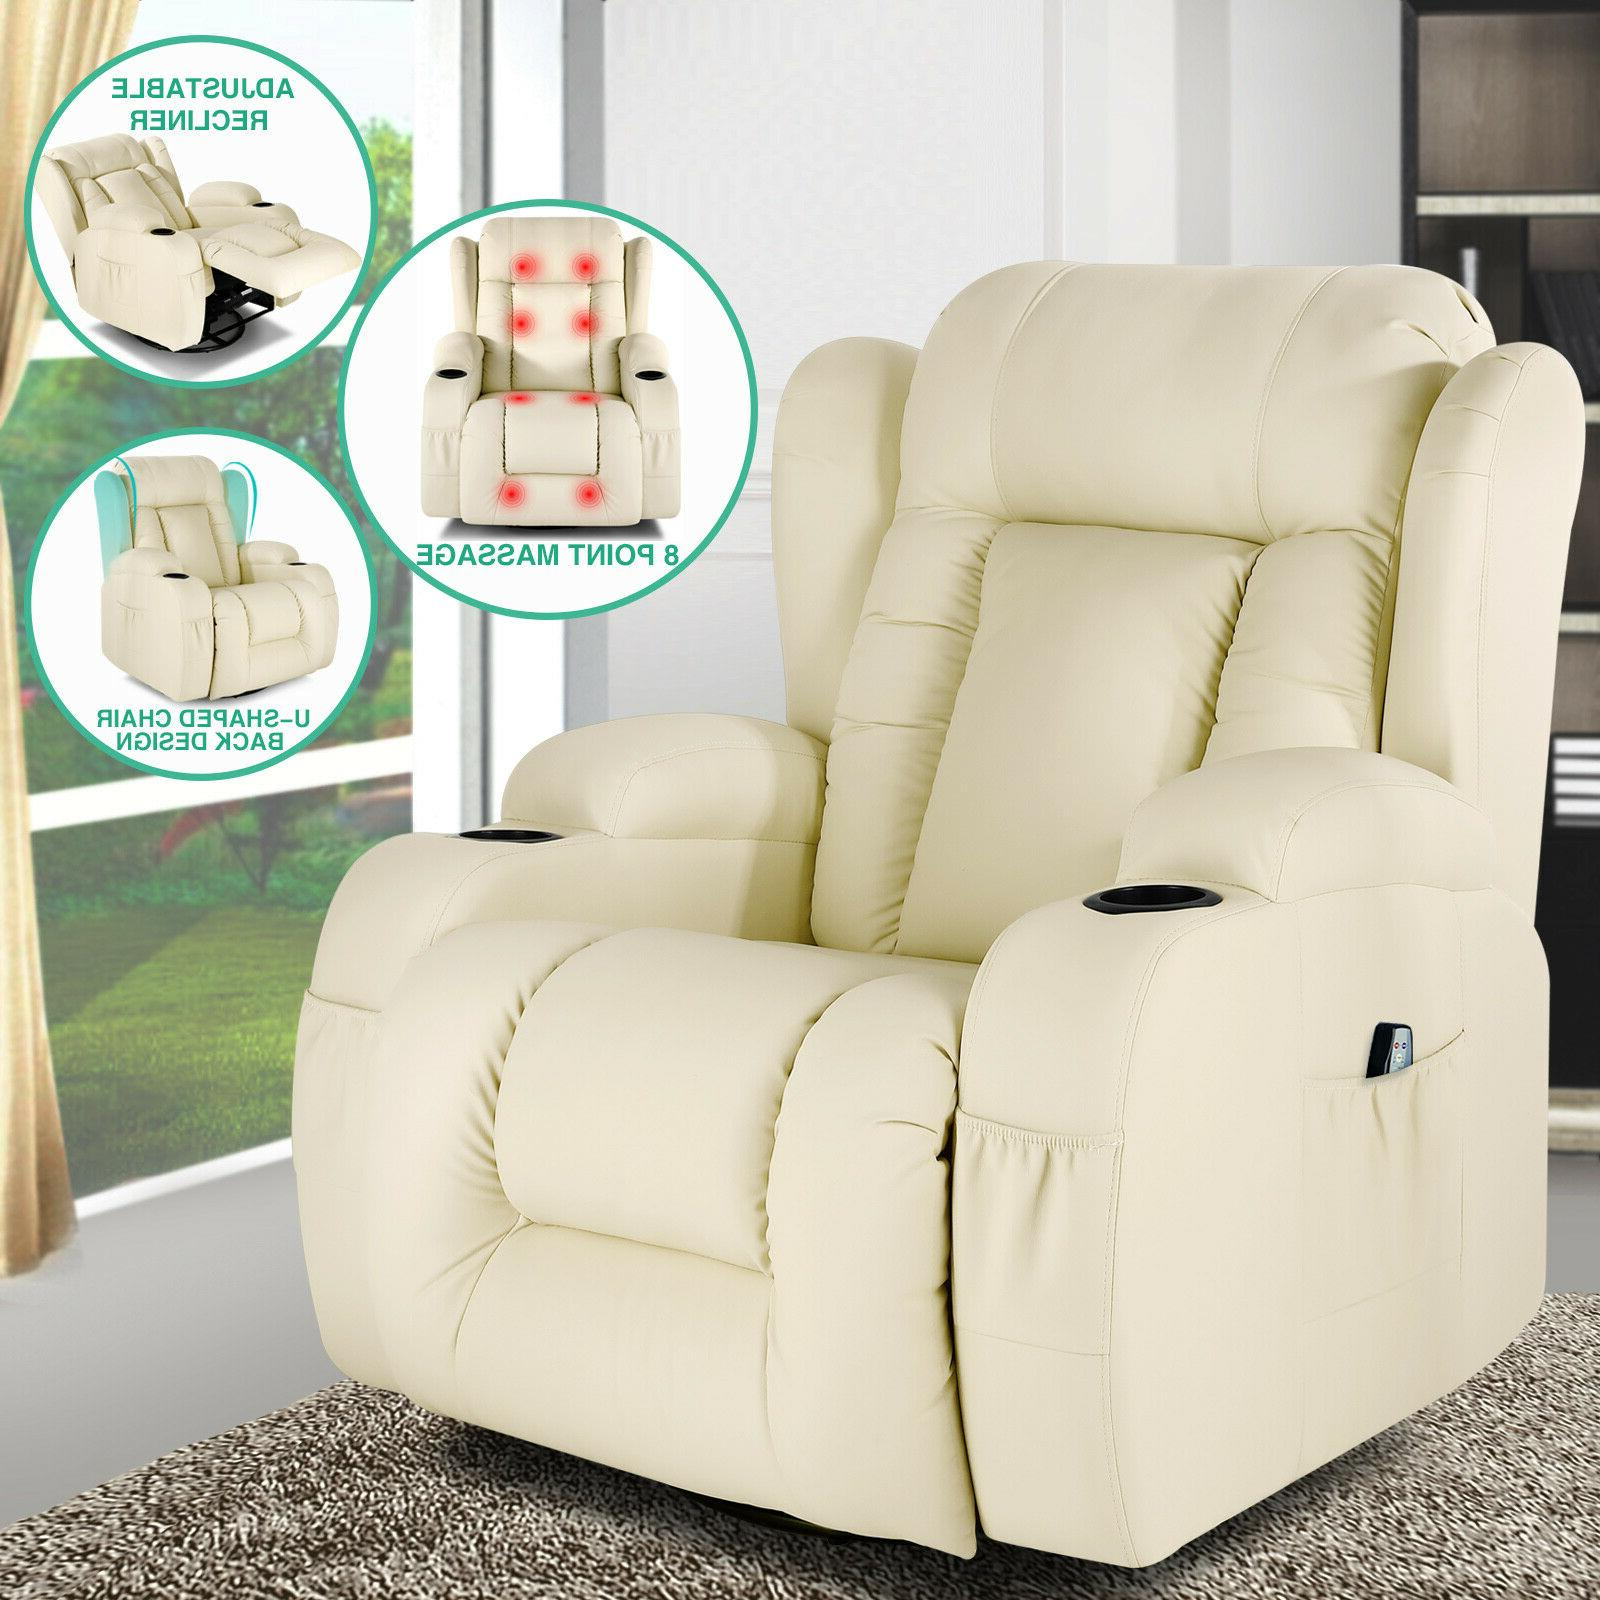 extra wide back leather massage recliner chair